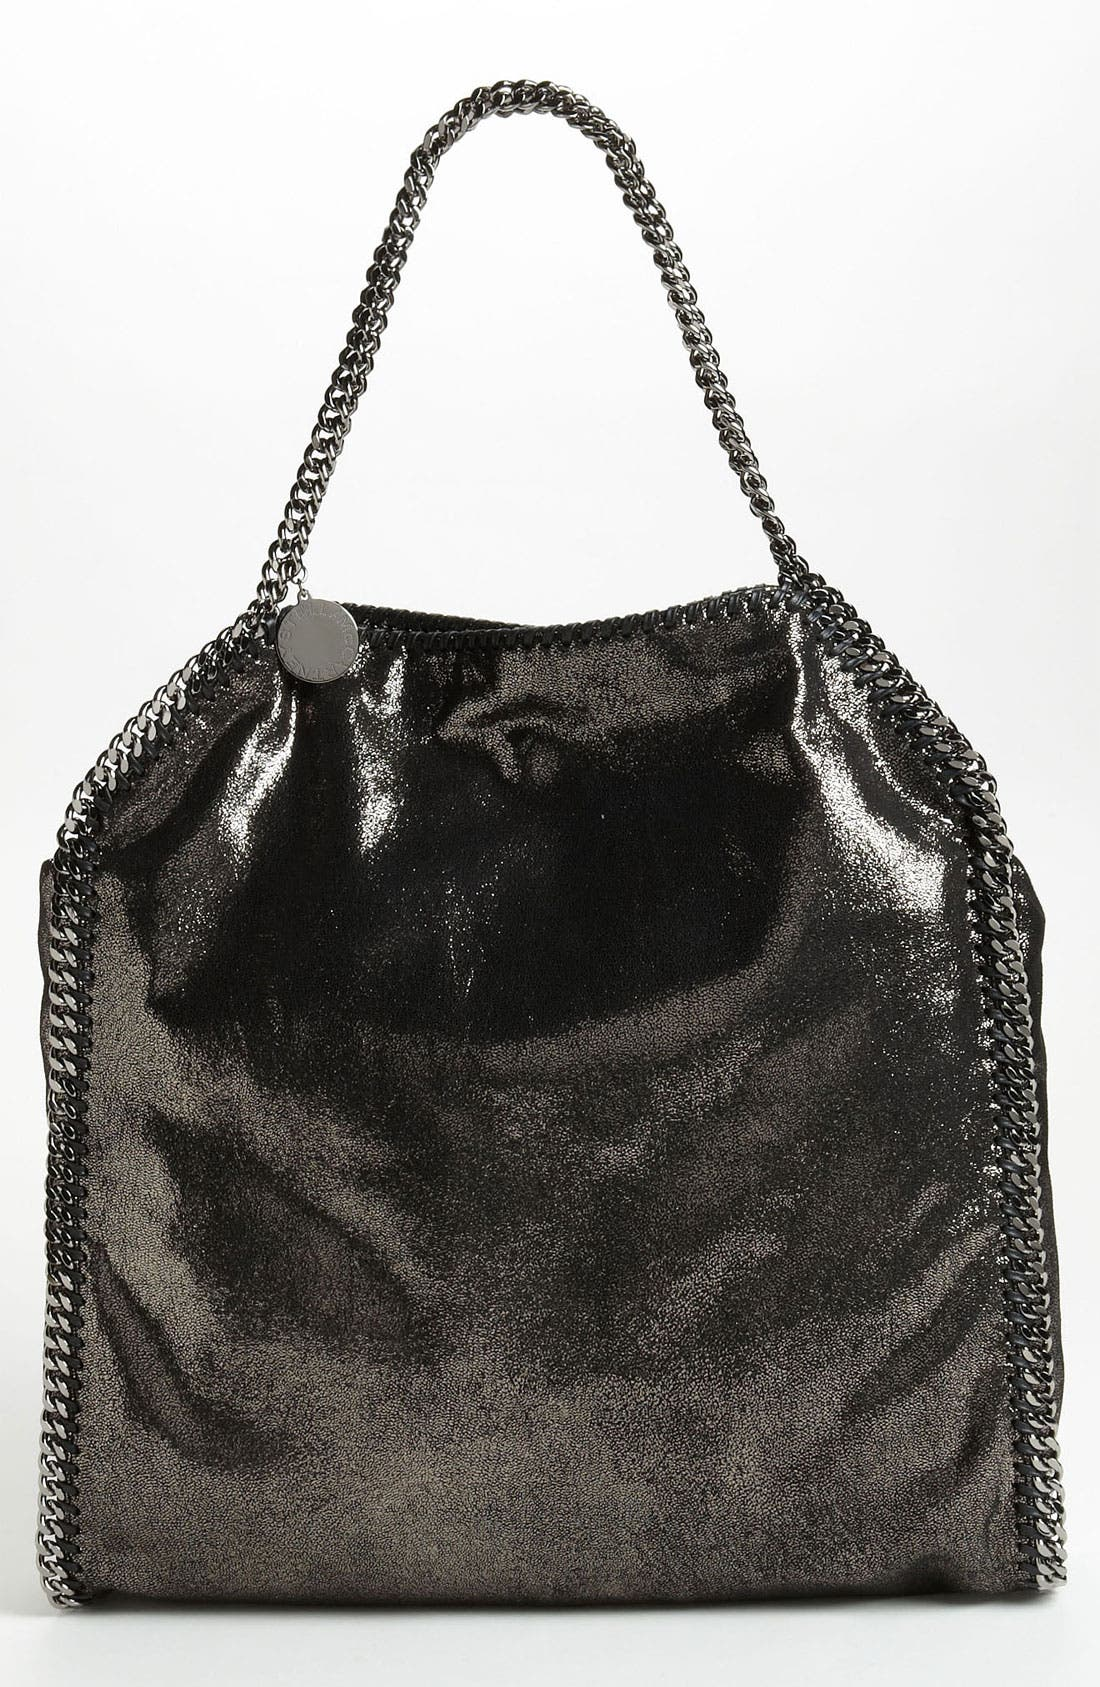 Alternate Image 1 Selected - Stella McCartney 'Falabella - Large' Metallic Tote